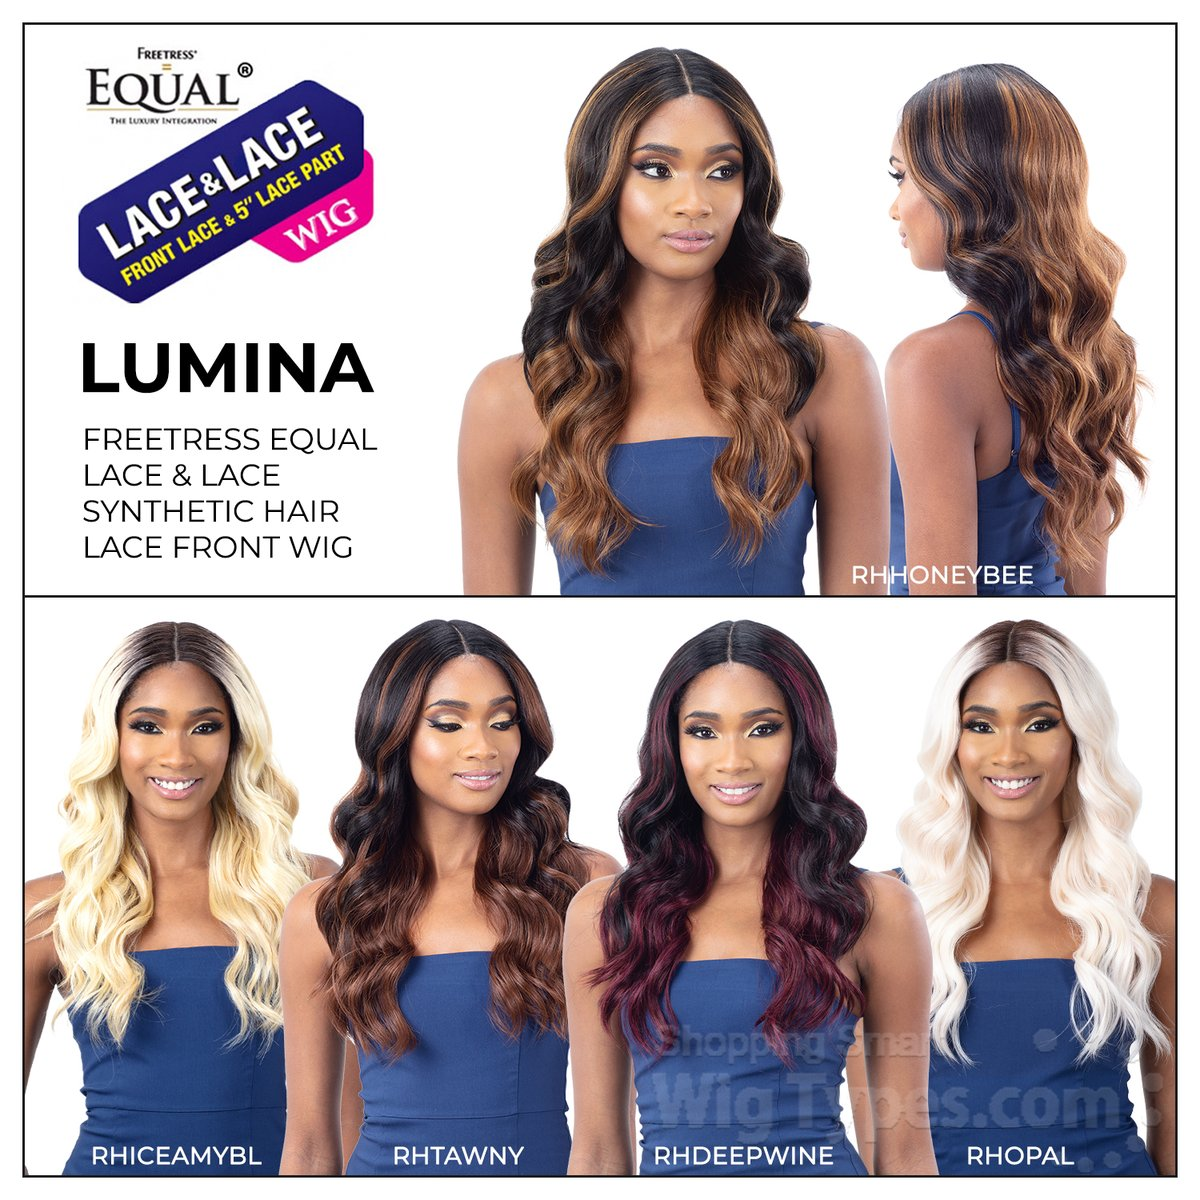 Freetress Equal Lace & Lace Synthetic Hair Lace Front Wig - LUMINA (https://soo.nr/46YV)  . . . #wigtypes #wigtypesdotcom #trendyhair #protectivestyles #blackgirlhair #blackgirlmagic #instahair #Longwigs #lacefrontwig #syntheticwigs #shakengo #lacenlace #hdlacewig #luminawigpic.twitter.com/3Fp1uOhUjl